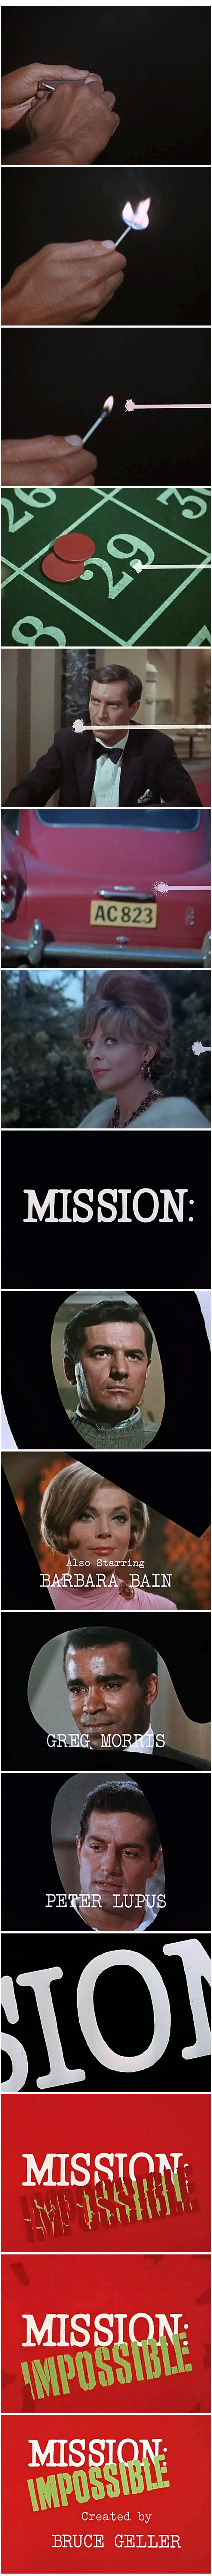 Mission Impossible - Bruce Geller, 1966-73 Loves the opening sequence and the music. Not sure if the Tom Cruise movies have really captured the essence of this show . .